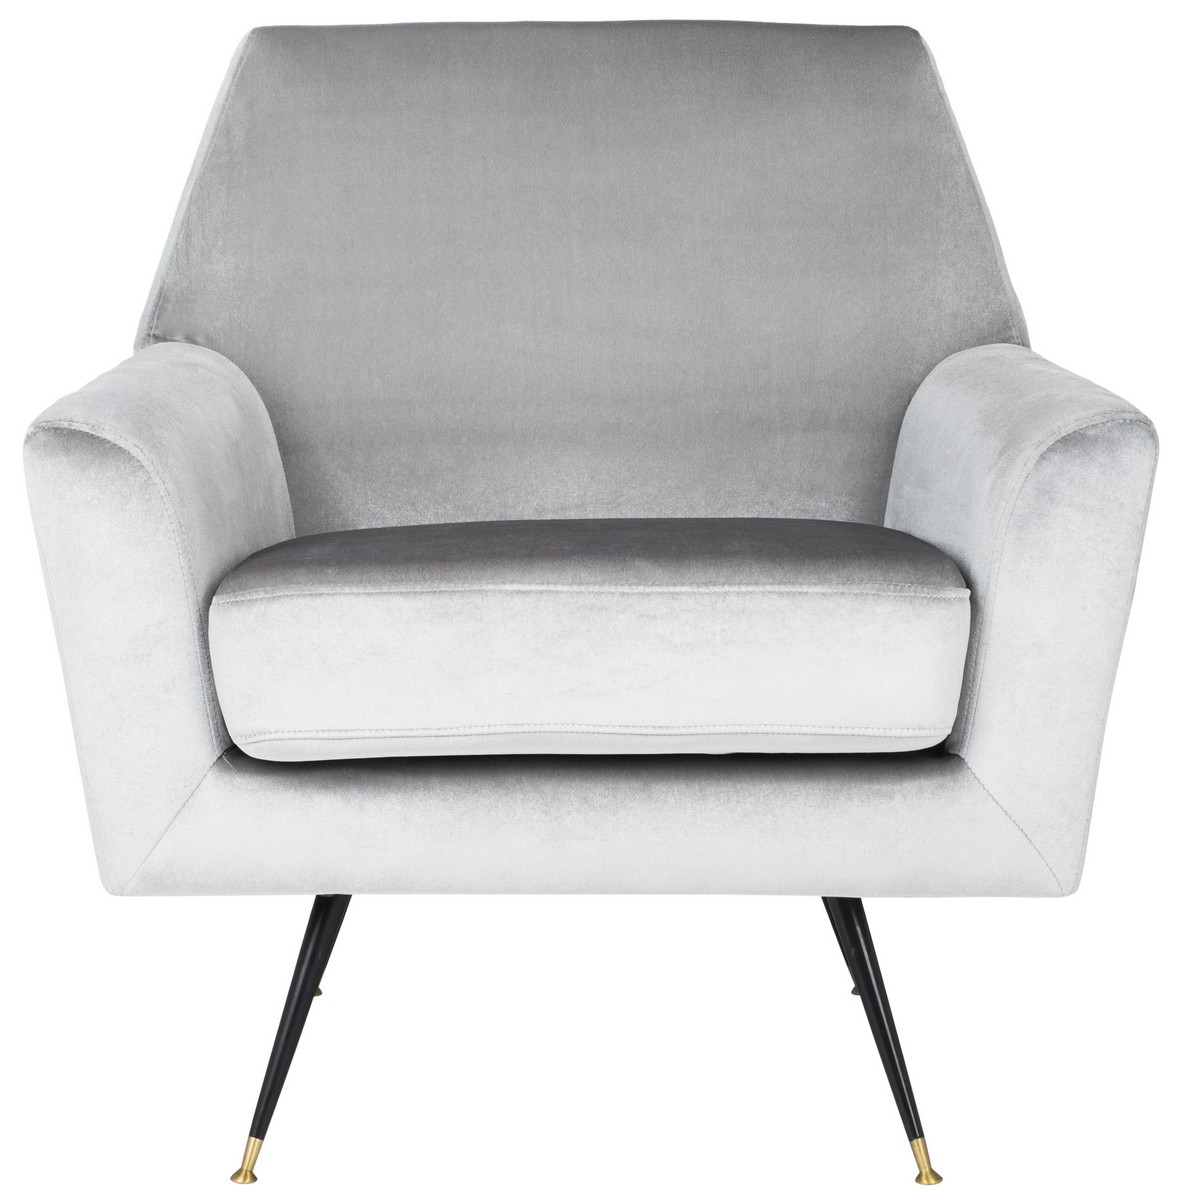 Gray Velvet Chair Fox6270b Accent Chairs Furniture By Safavieh